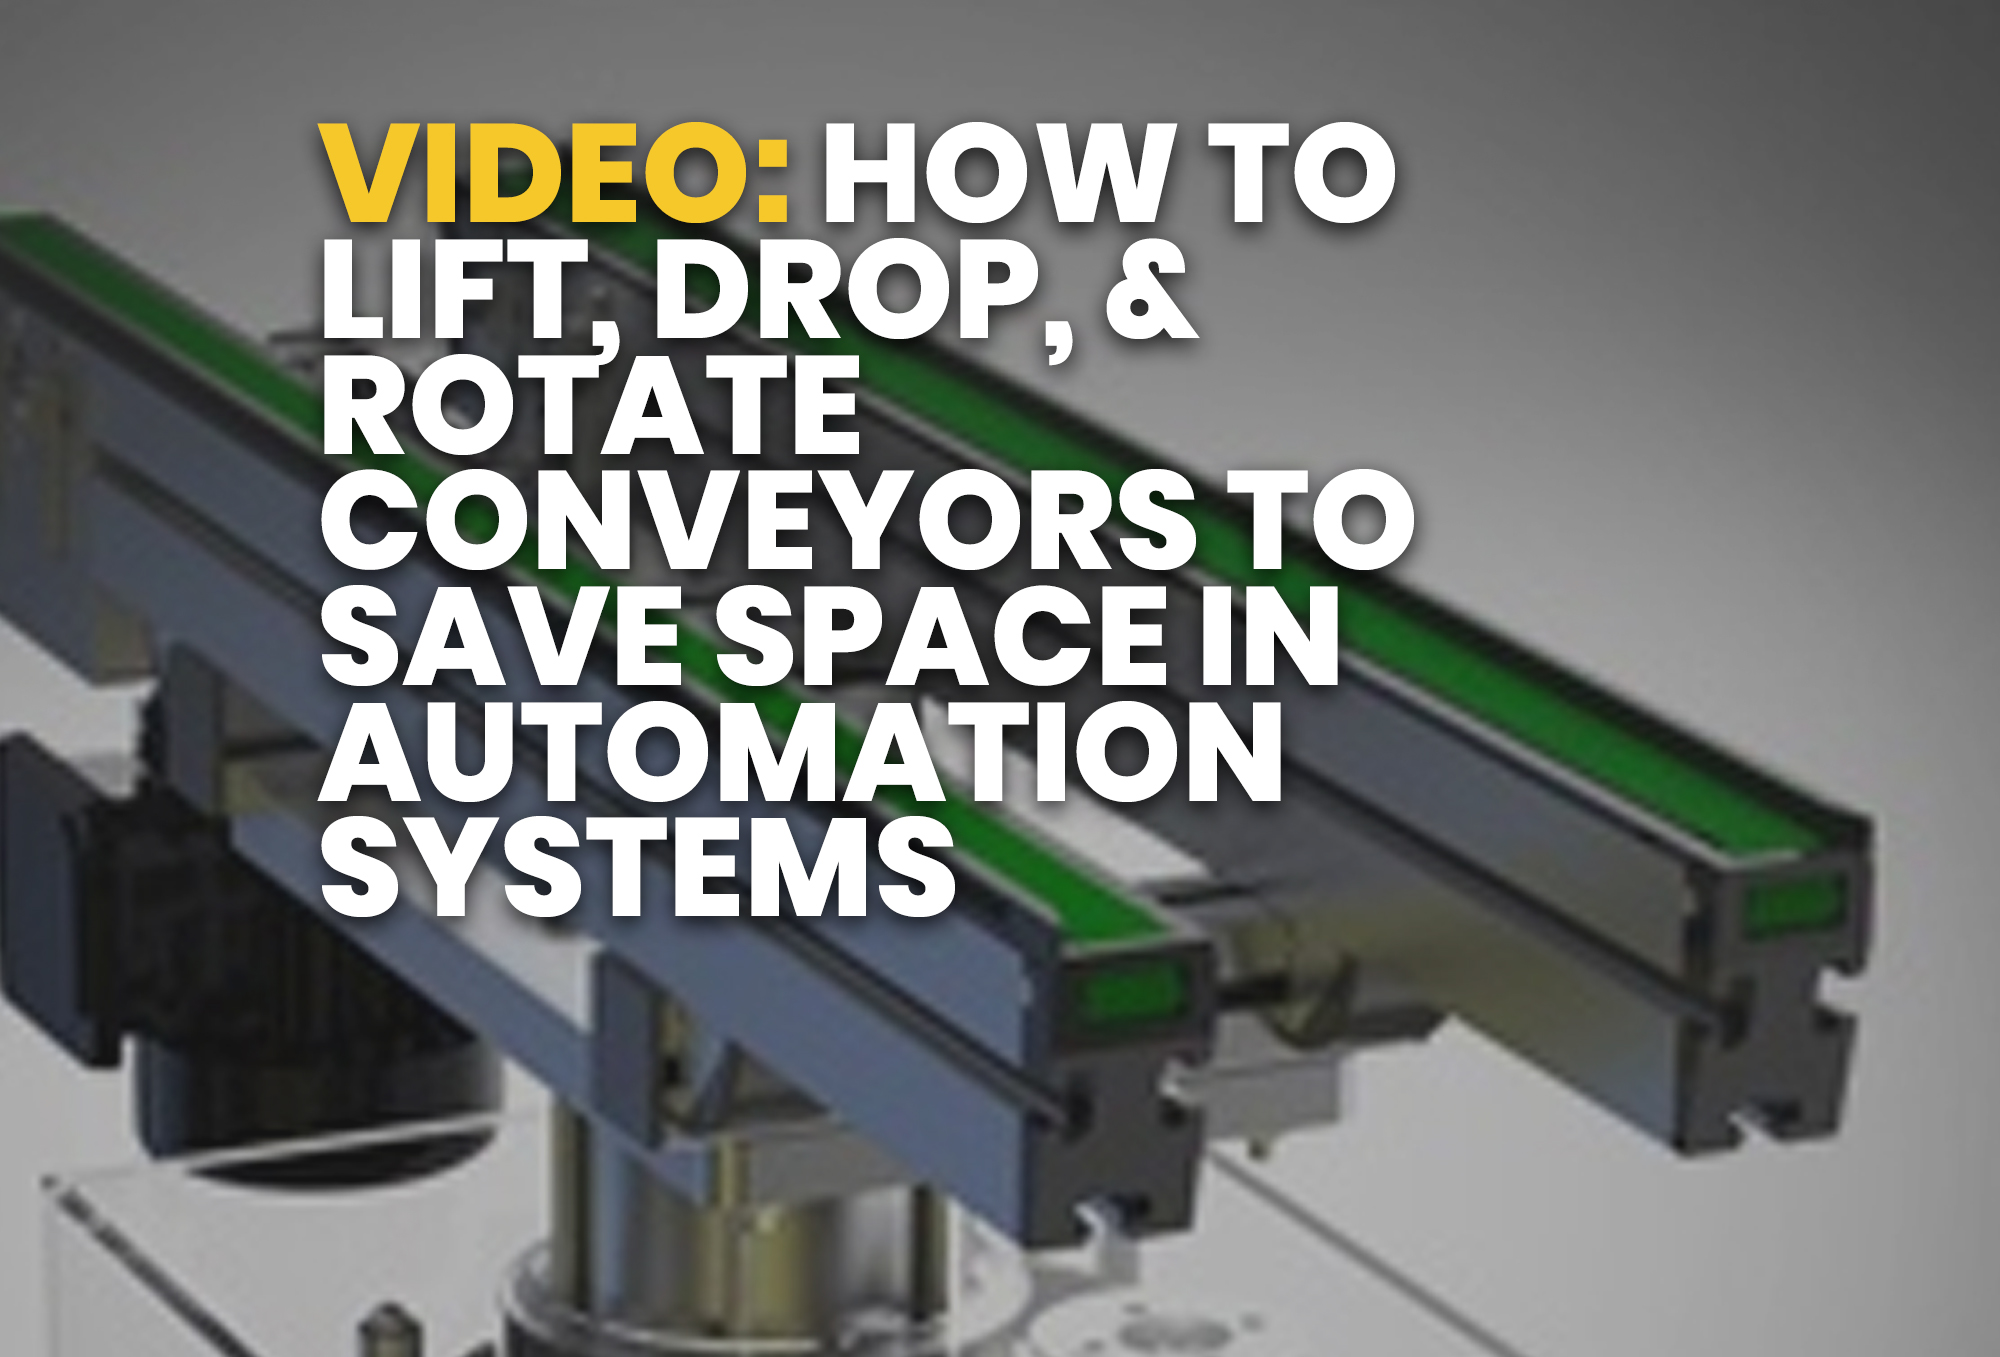 How to Lift, Drop, & Rotate Conveyors to Save Space in Automation Systems - resource